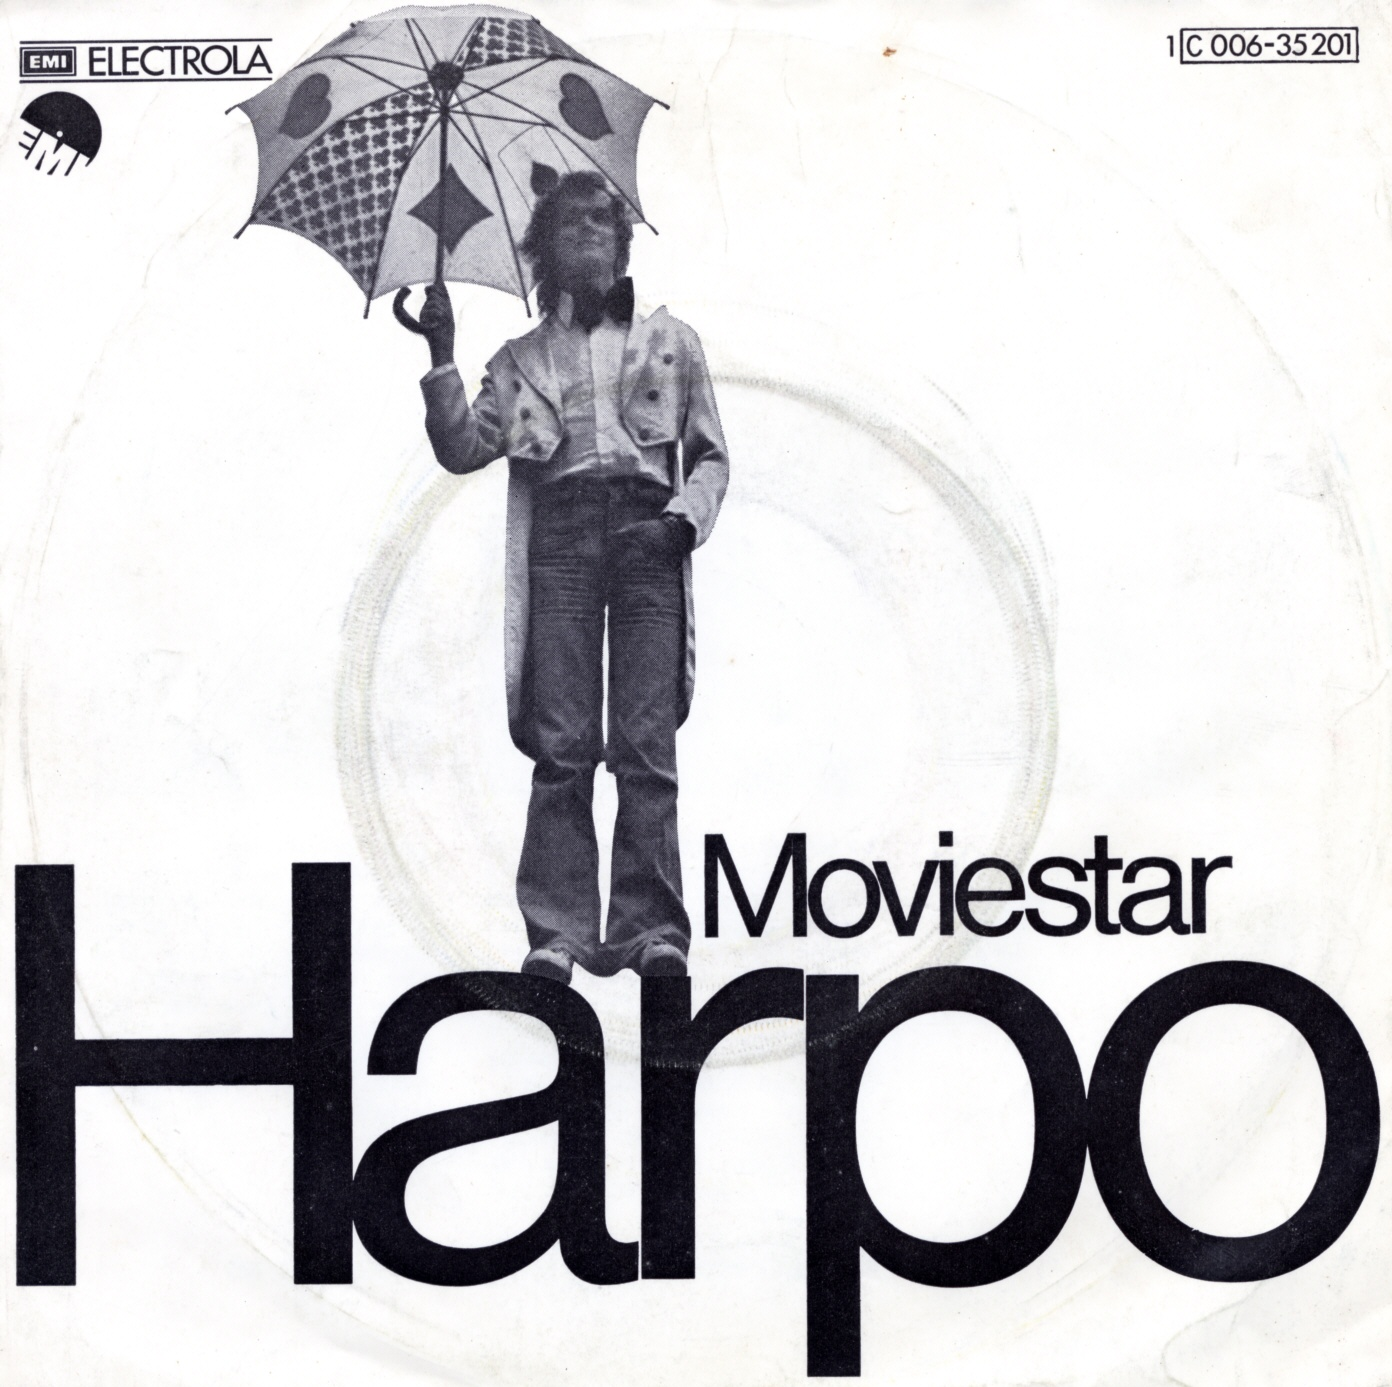 Cover: Moviestar, Harpo